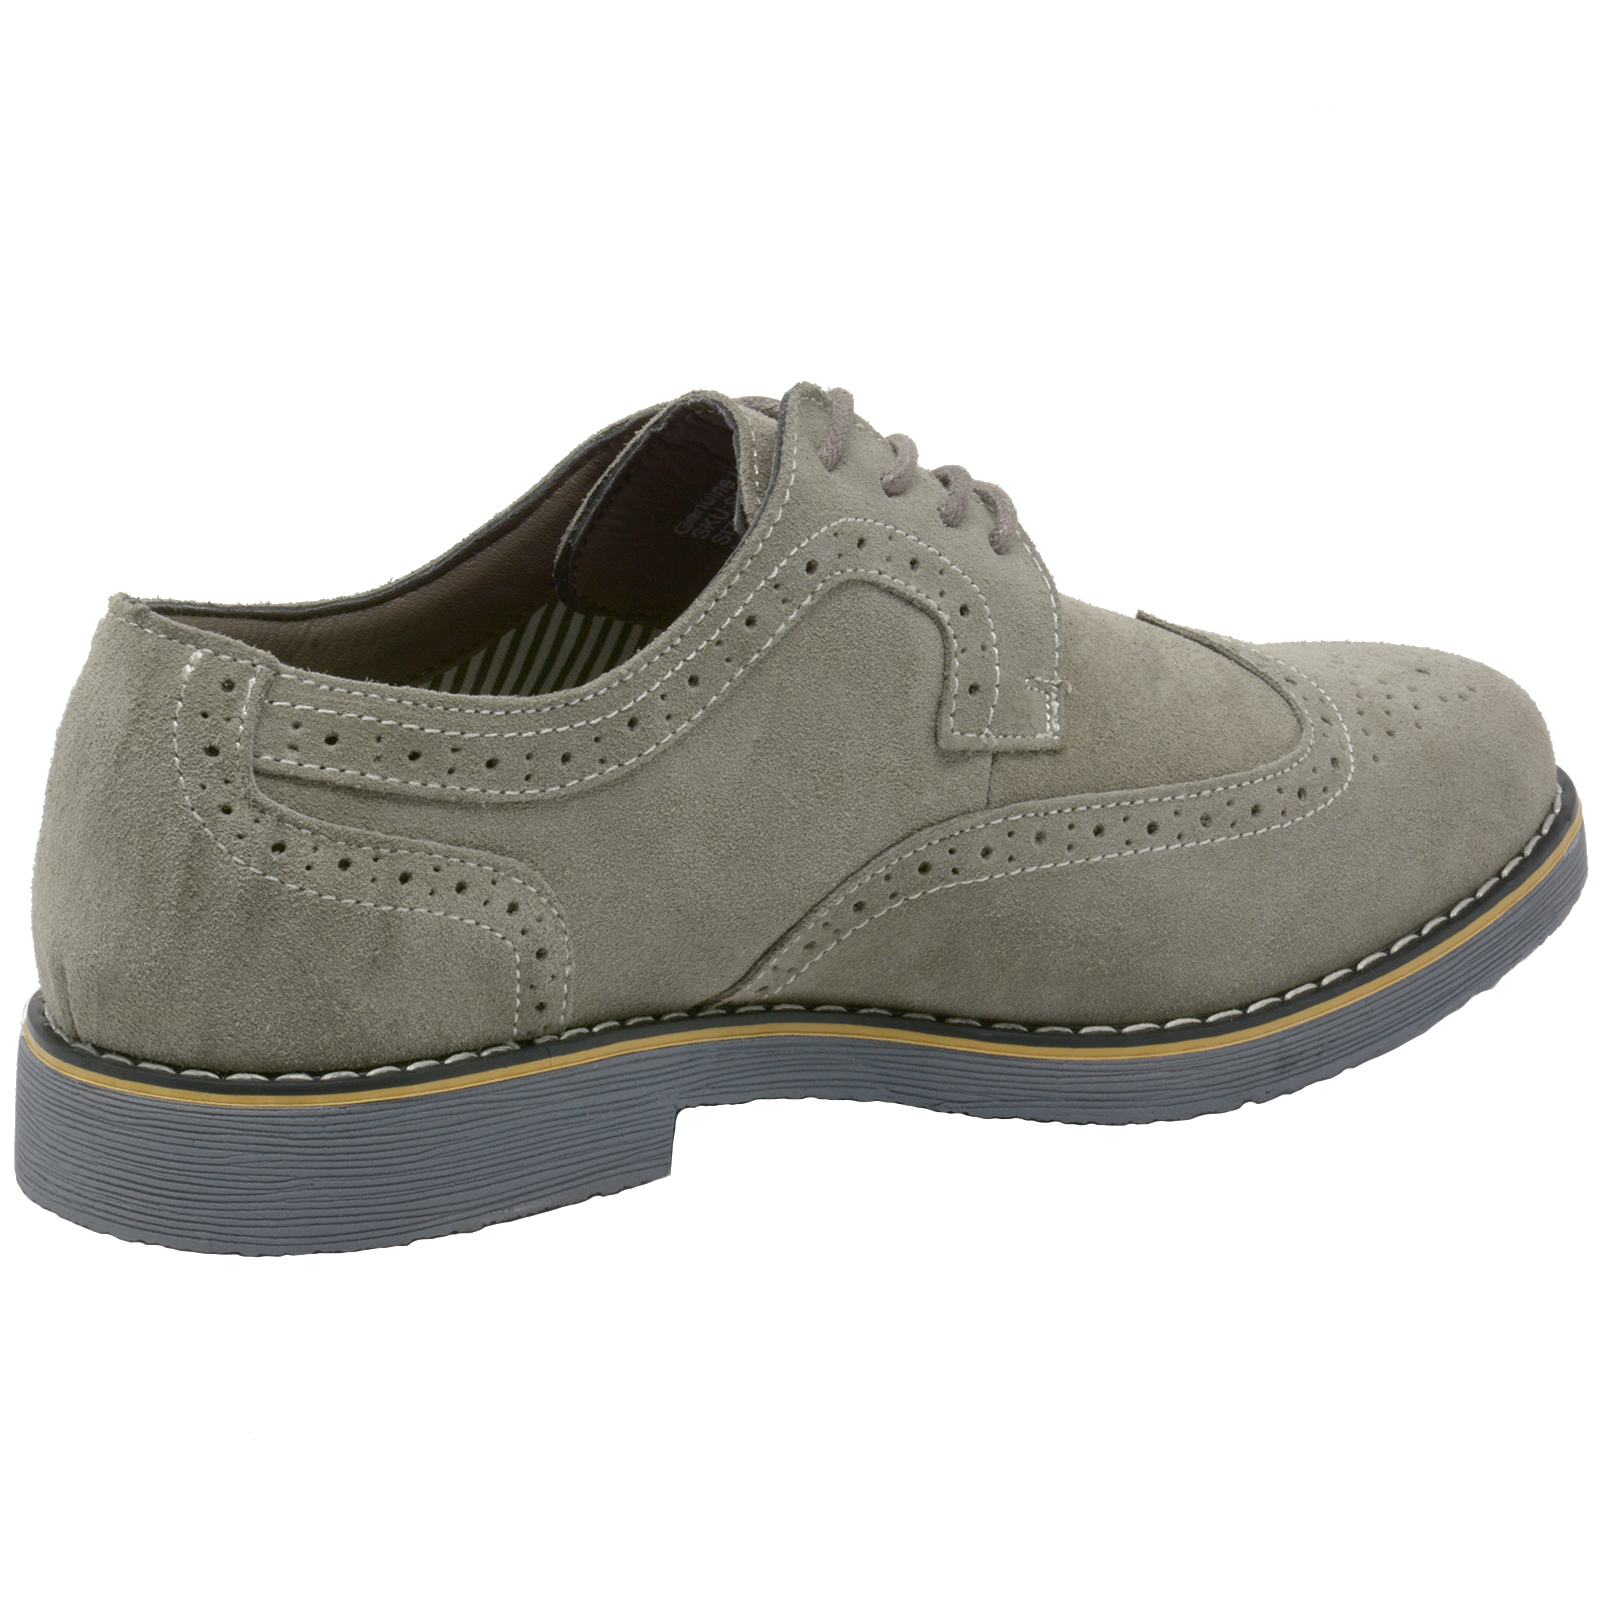 Alpine-Swiss-Beau-Mens-Dress-Shoes-Genuine-Suede-Wing-Tip-Brogue-Lace-Up-Oxfords thumbnail 18